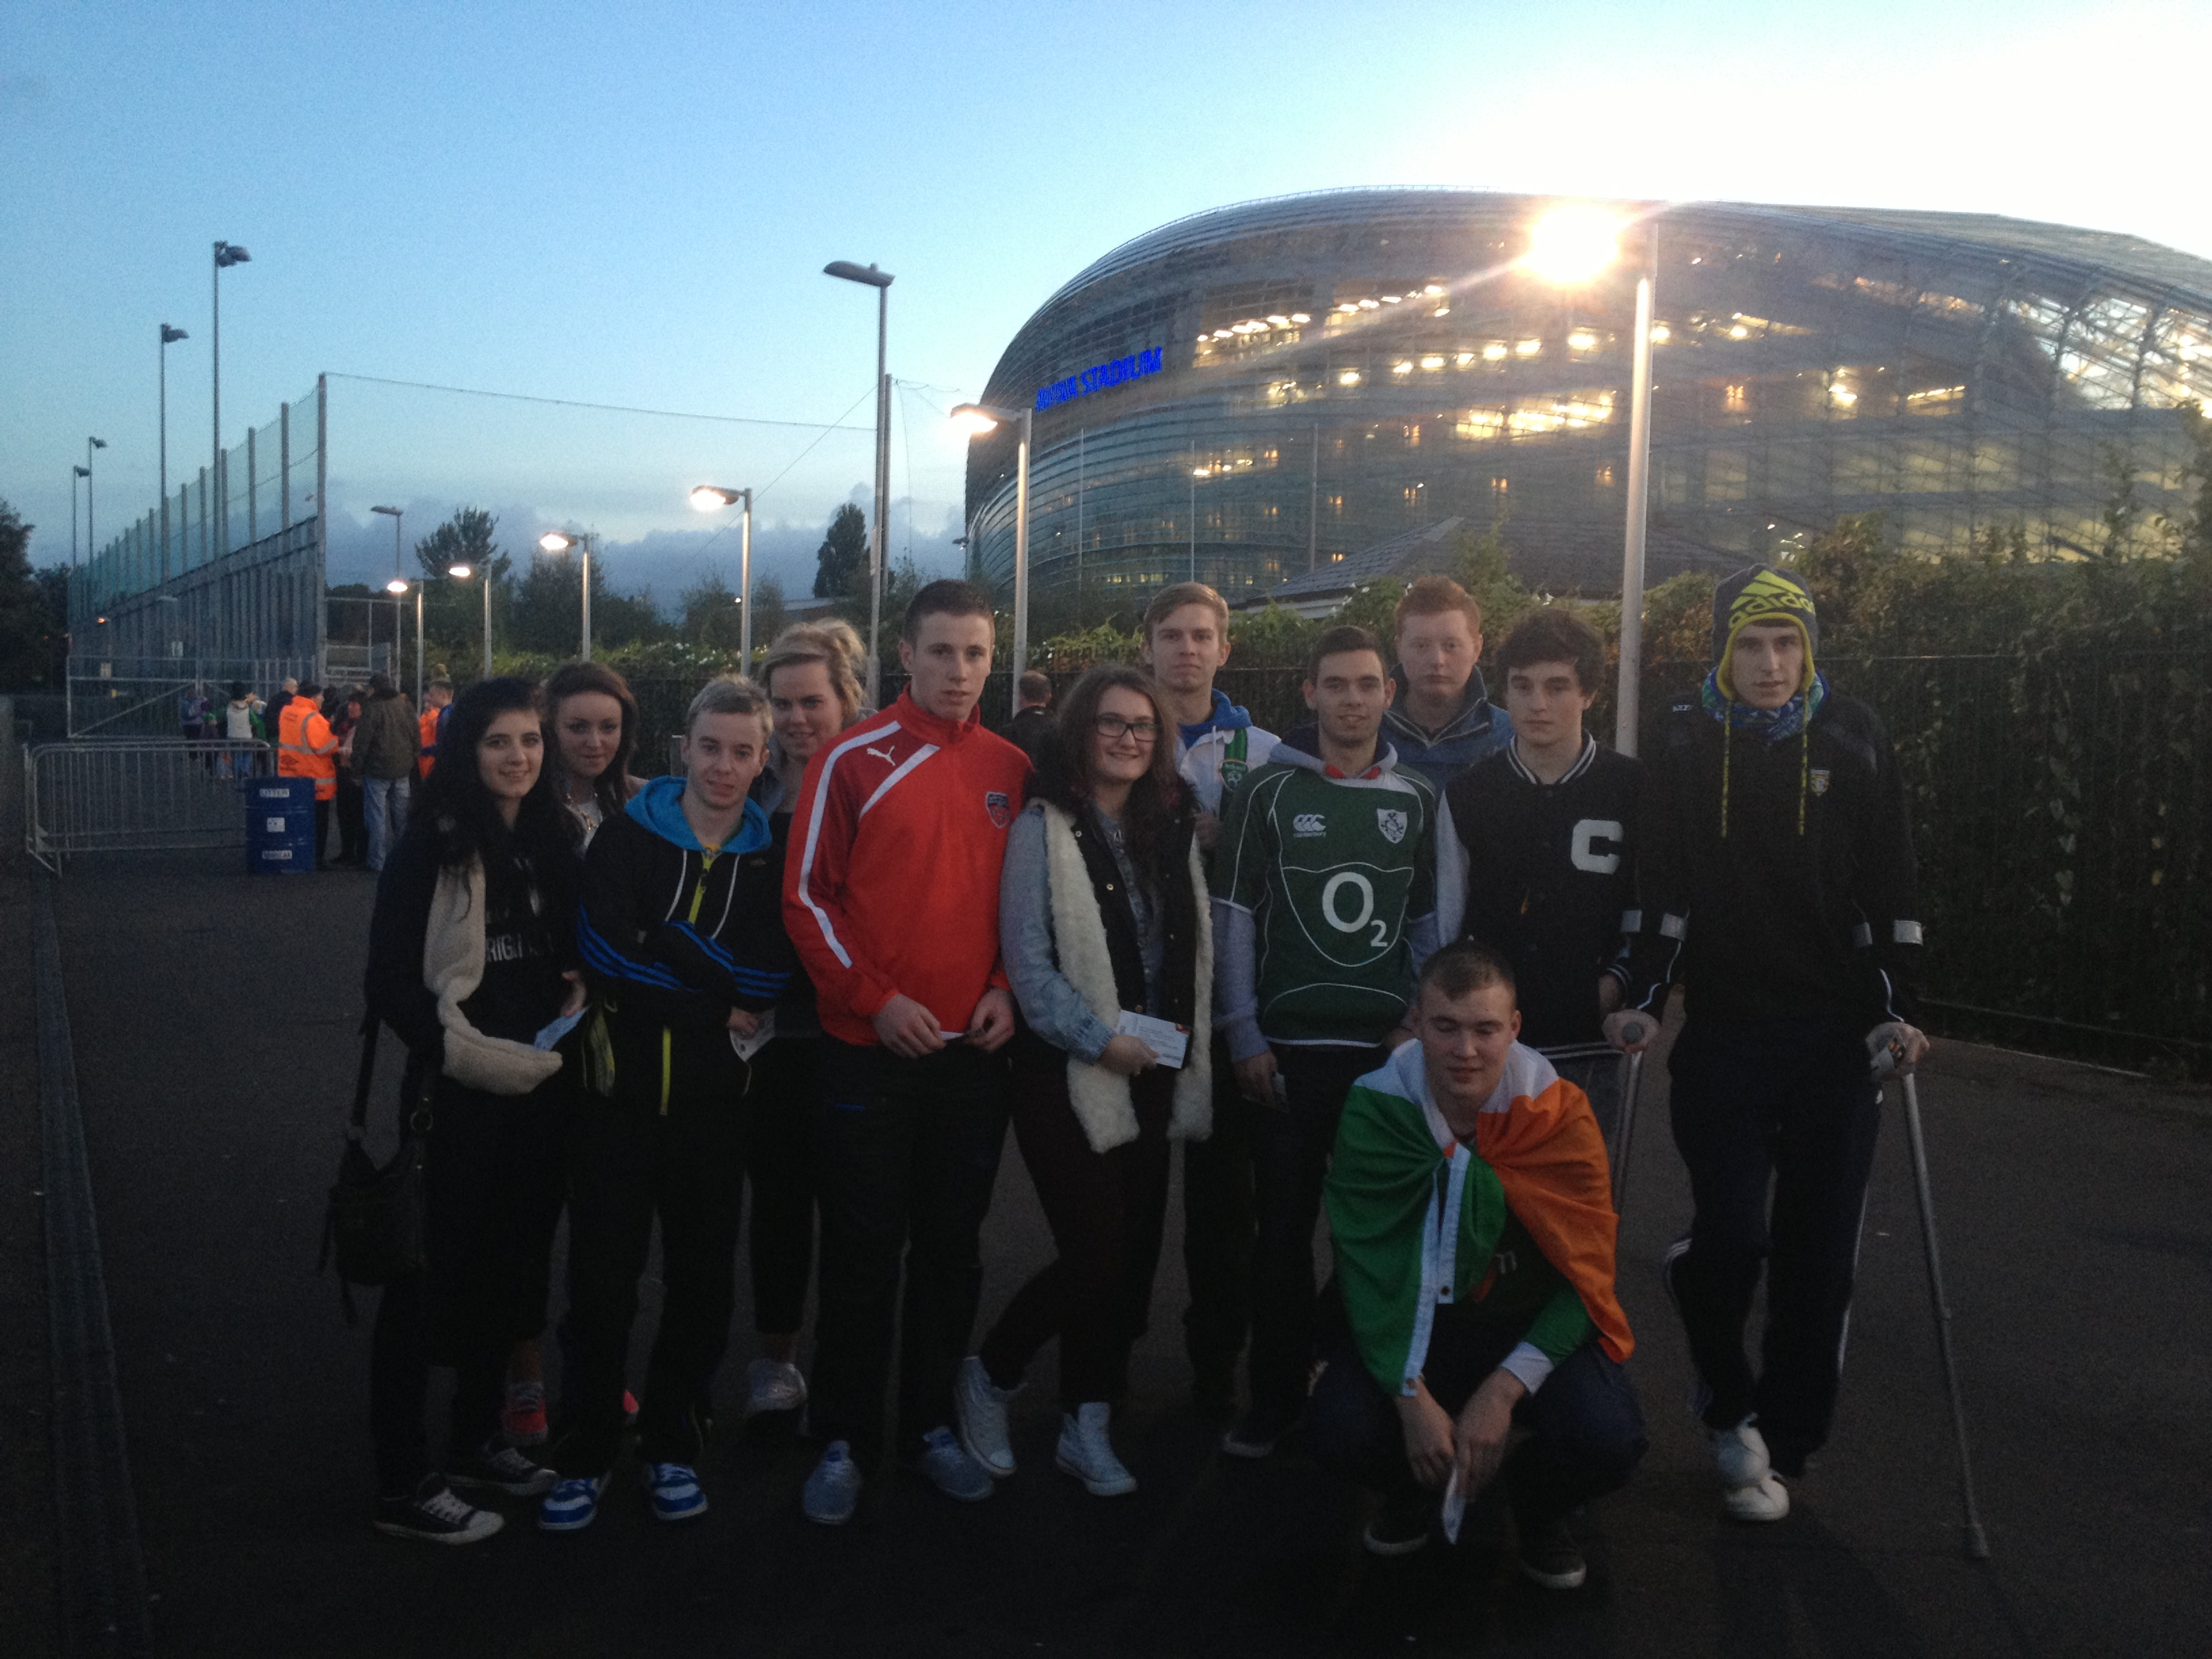 The group pictured outside the Aviva en route to the game.